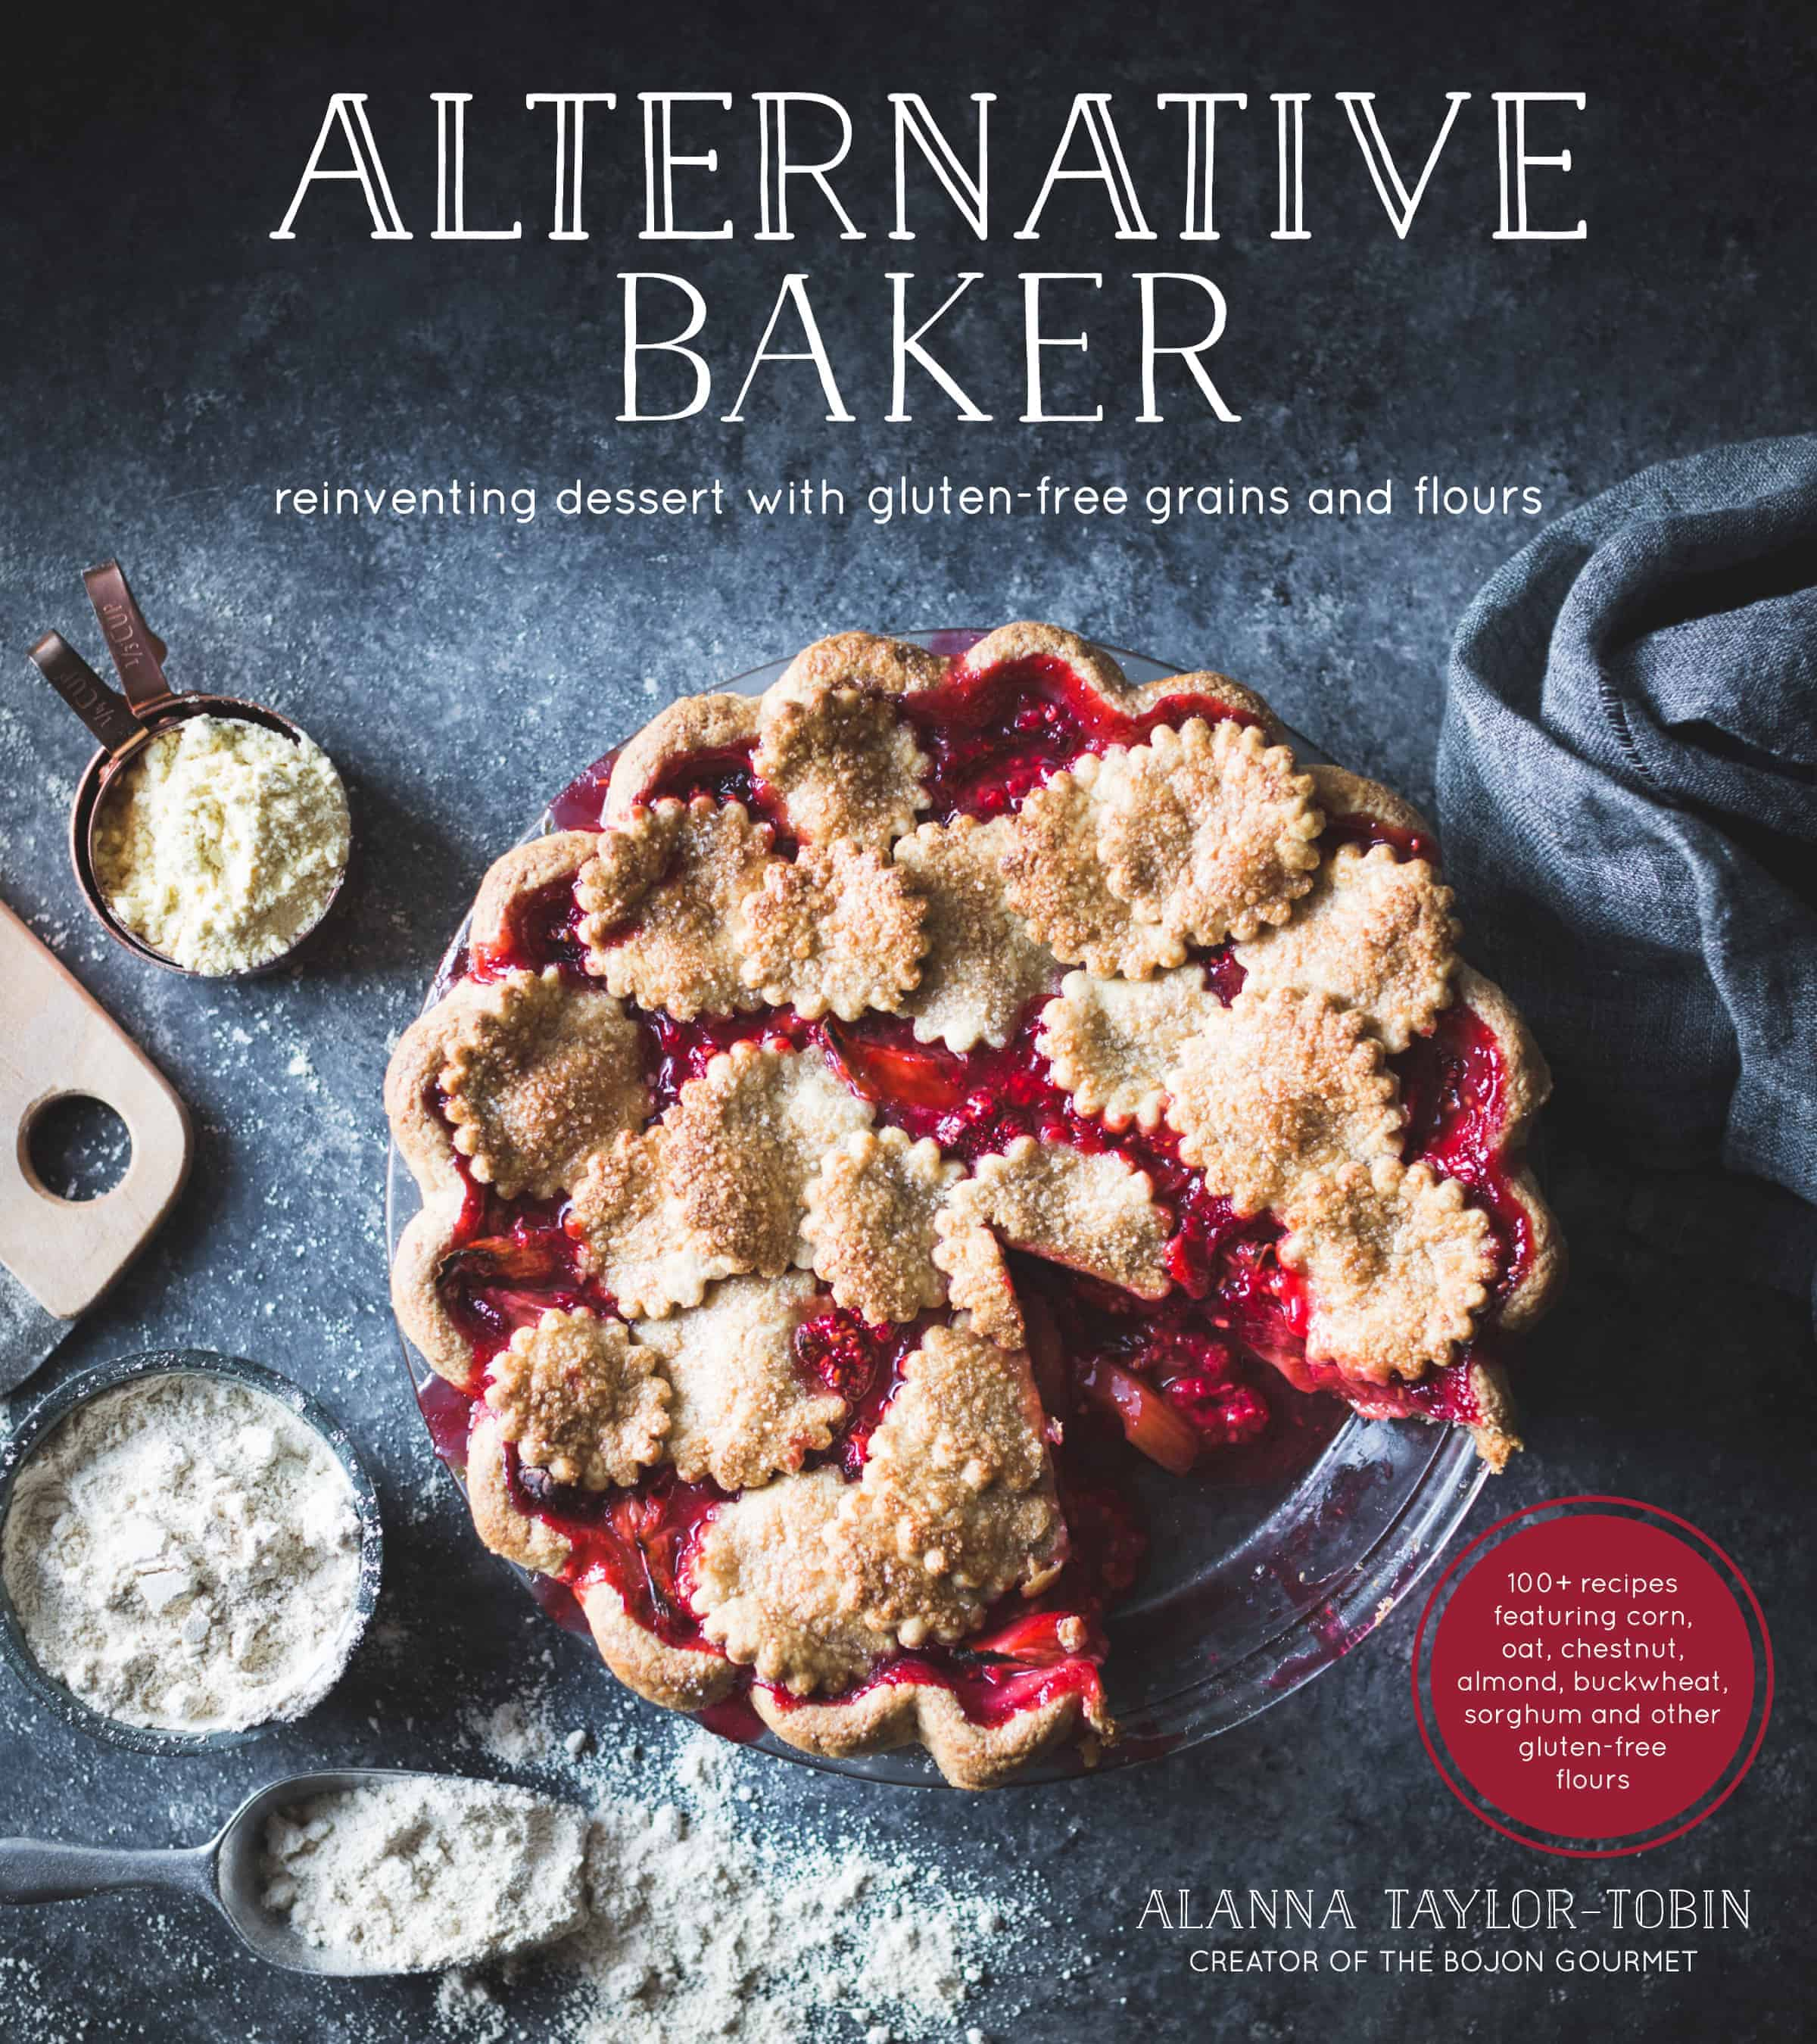 Alternative Baker Cookbook